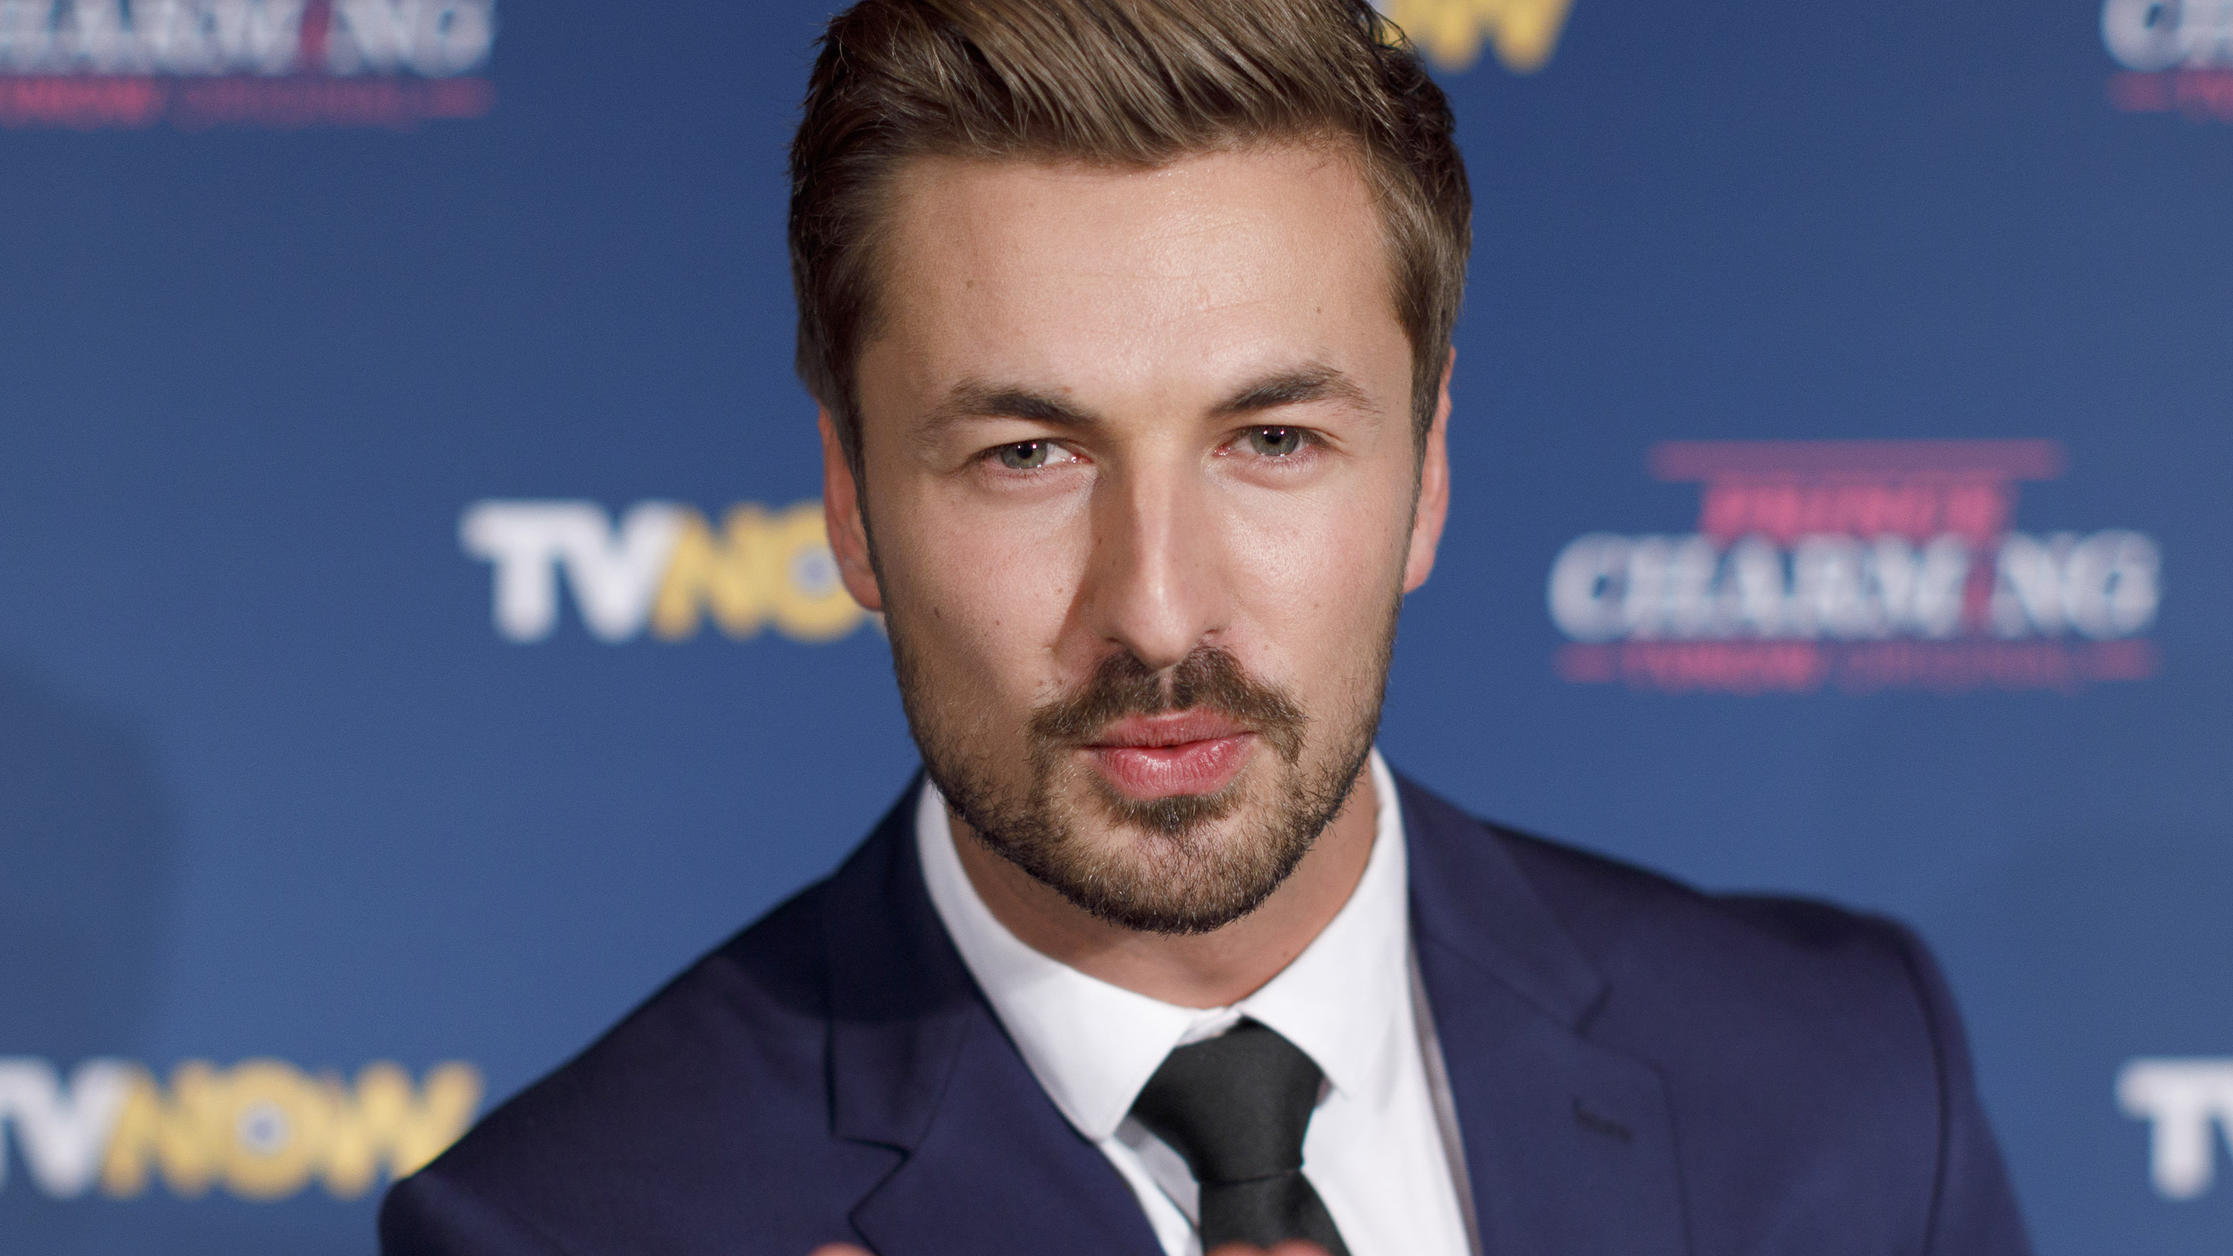 Nicolas Puschmann bei der Premiere der TVNOW Gay-Dating-Show Prince Charming in Hennes Terrasse am Mauritiuswall. Köln, 29.10.2019 *** Nicolas Puschmann at the premiere of the TVNOW Gay Dating Show Prince Charming in Hennes Terrasse am Mauritiuswall